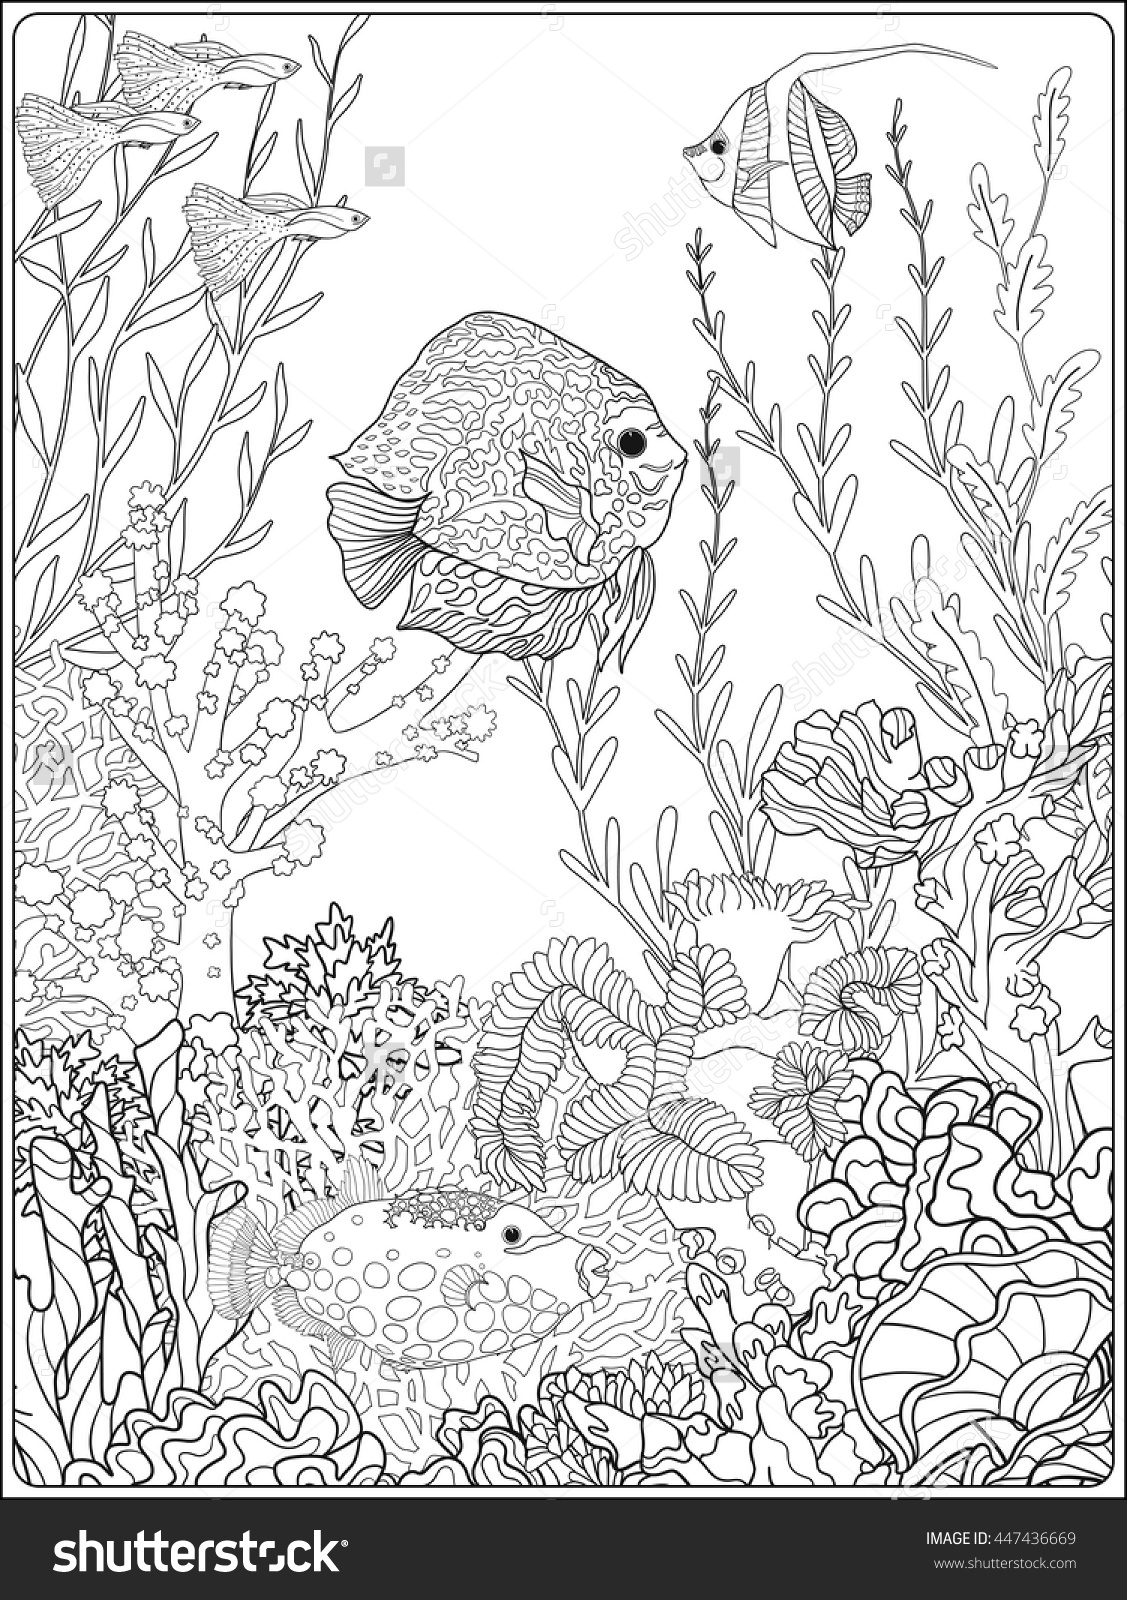 Sea World Coloring Pages At Getcolorings